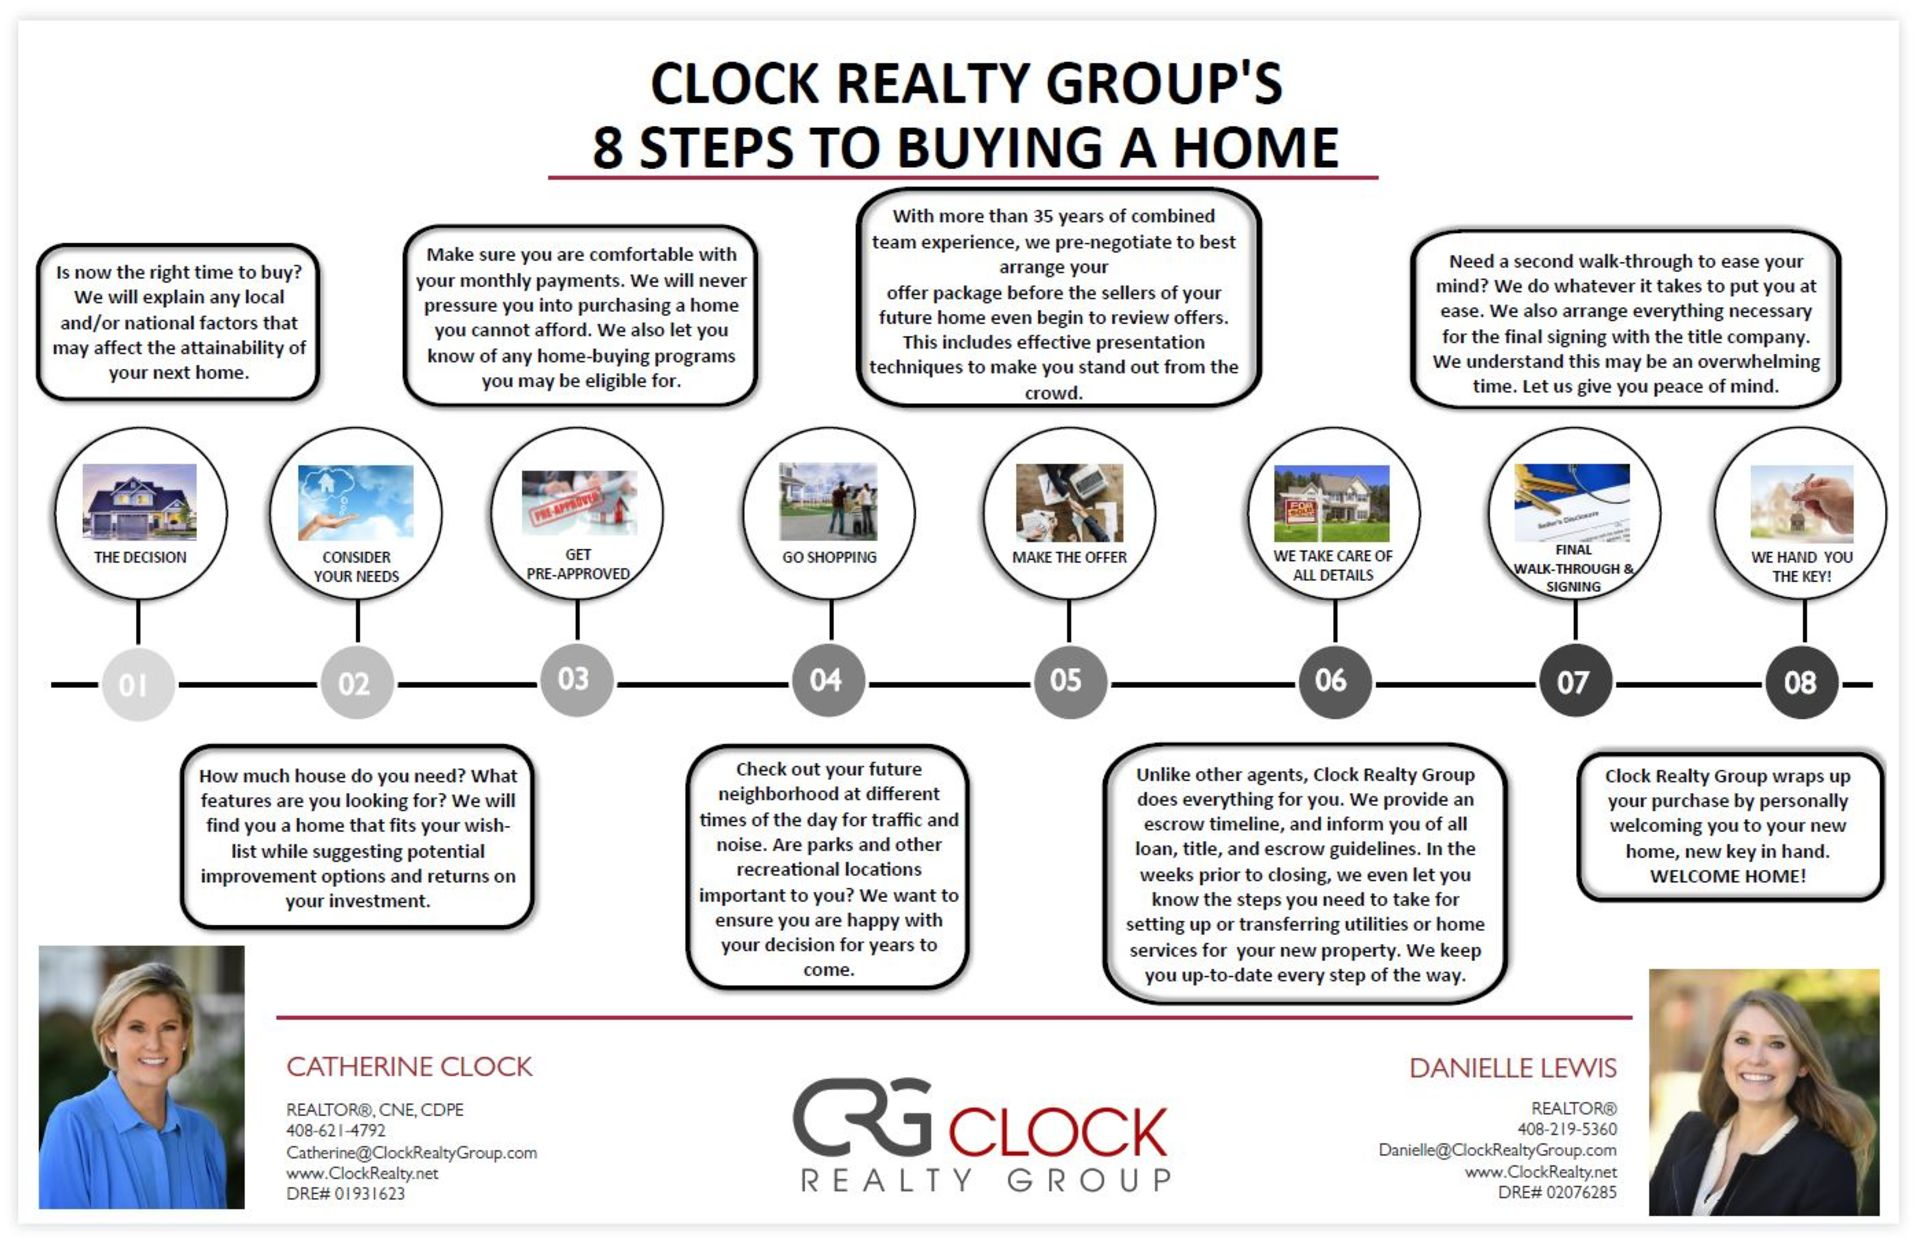 Clock Realty Group's 8 Steps to Buying a Home